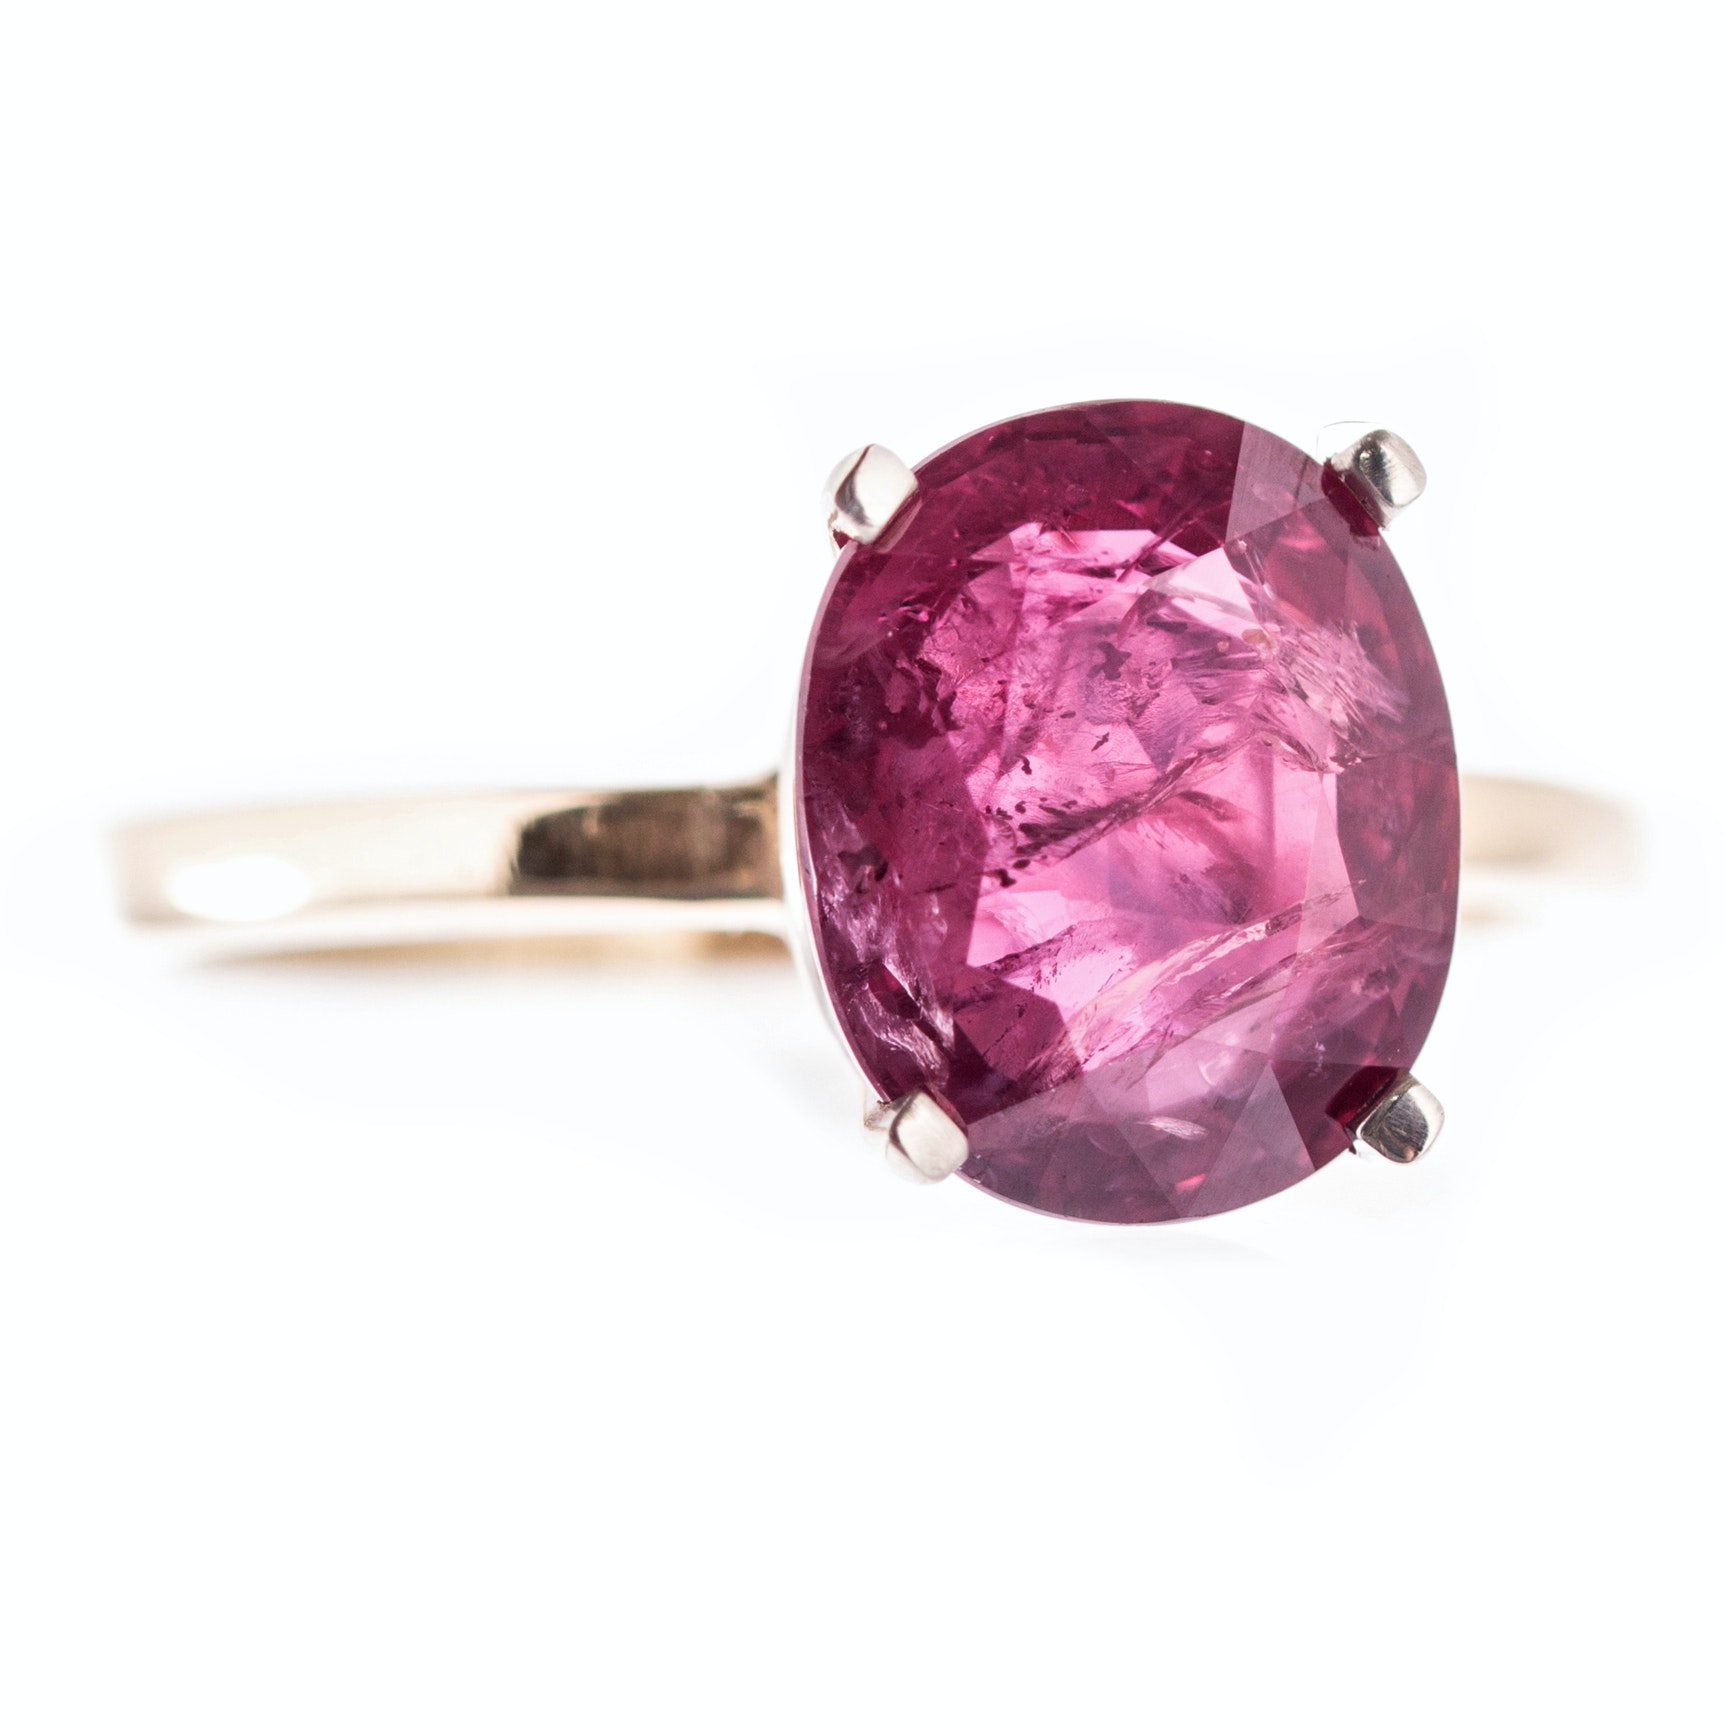 18K Yellow Gold 3.45 CT Ruby Ring with GIA Report